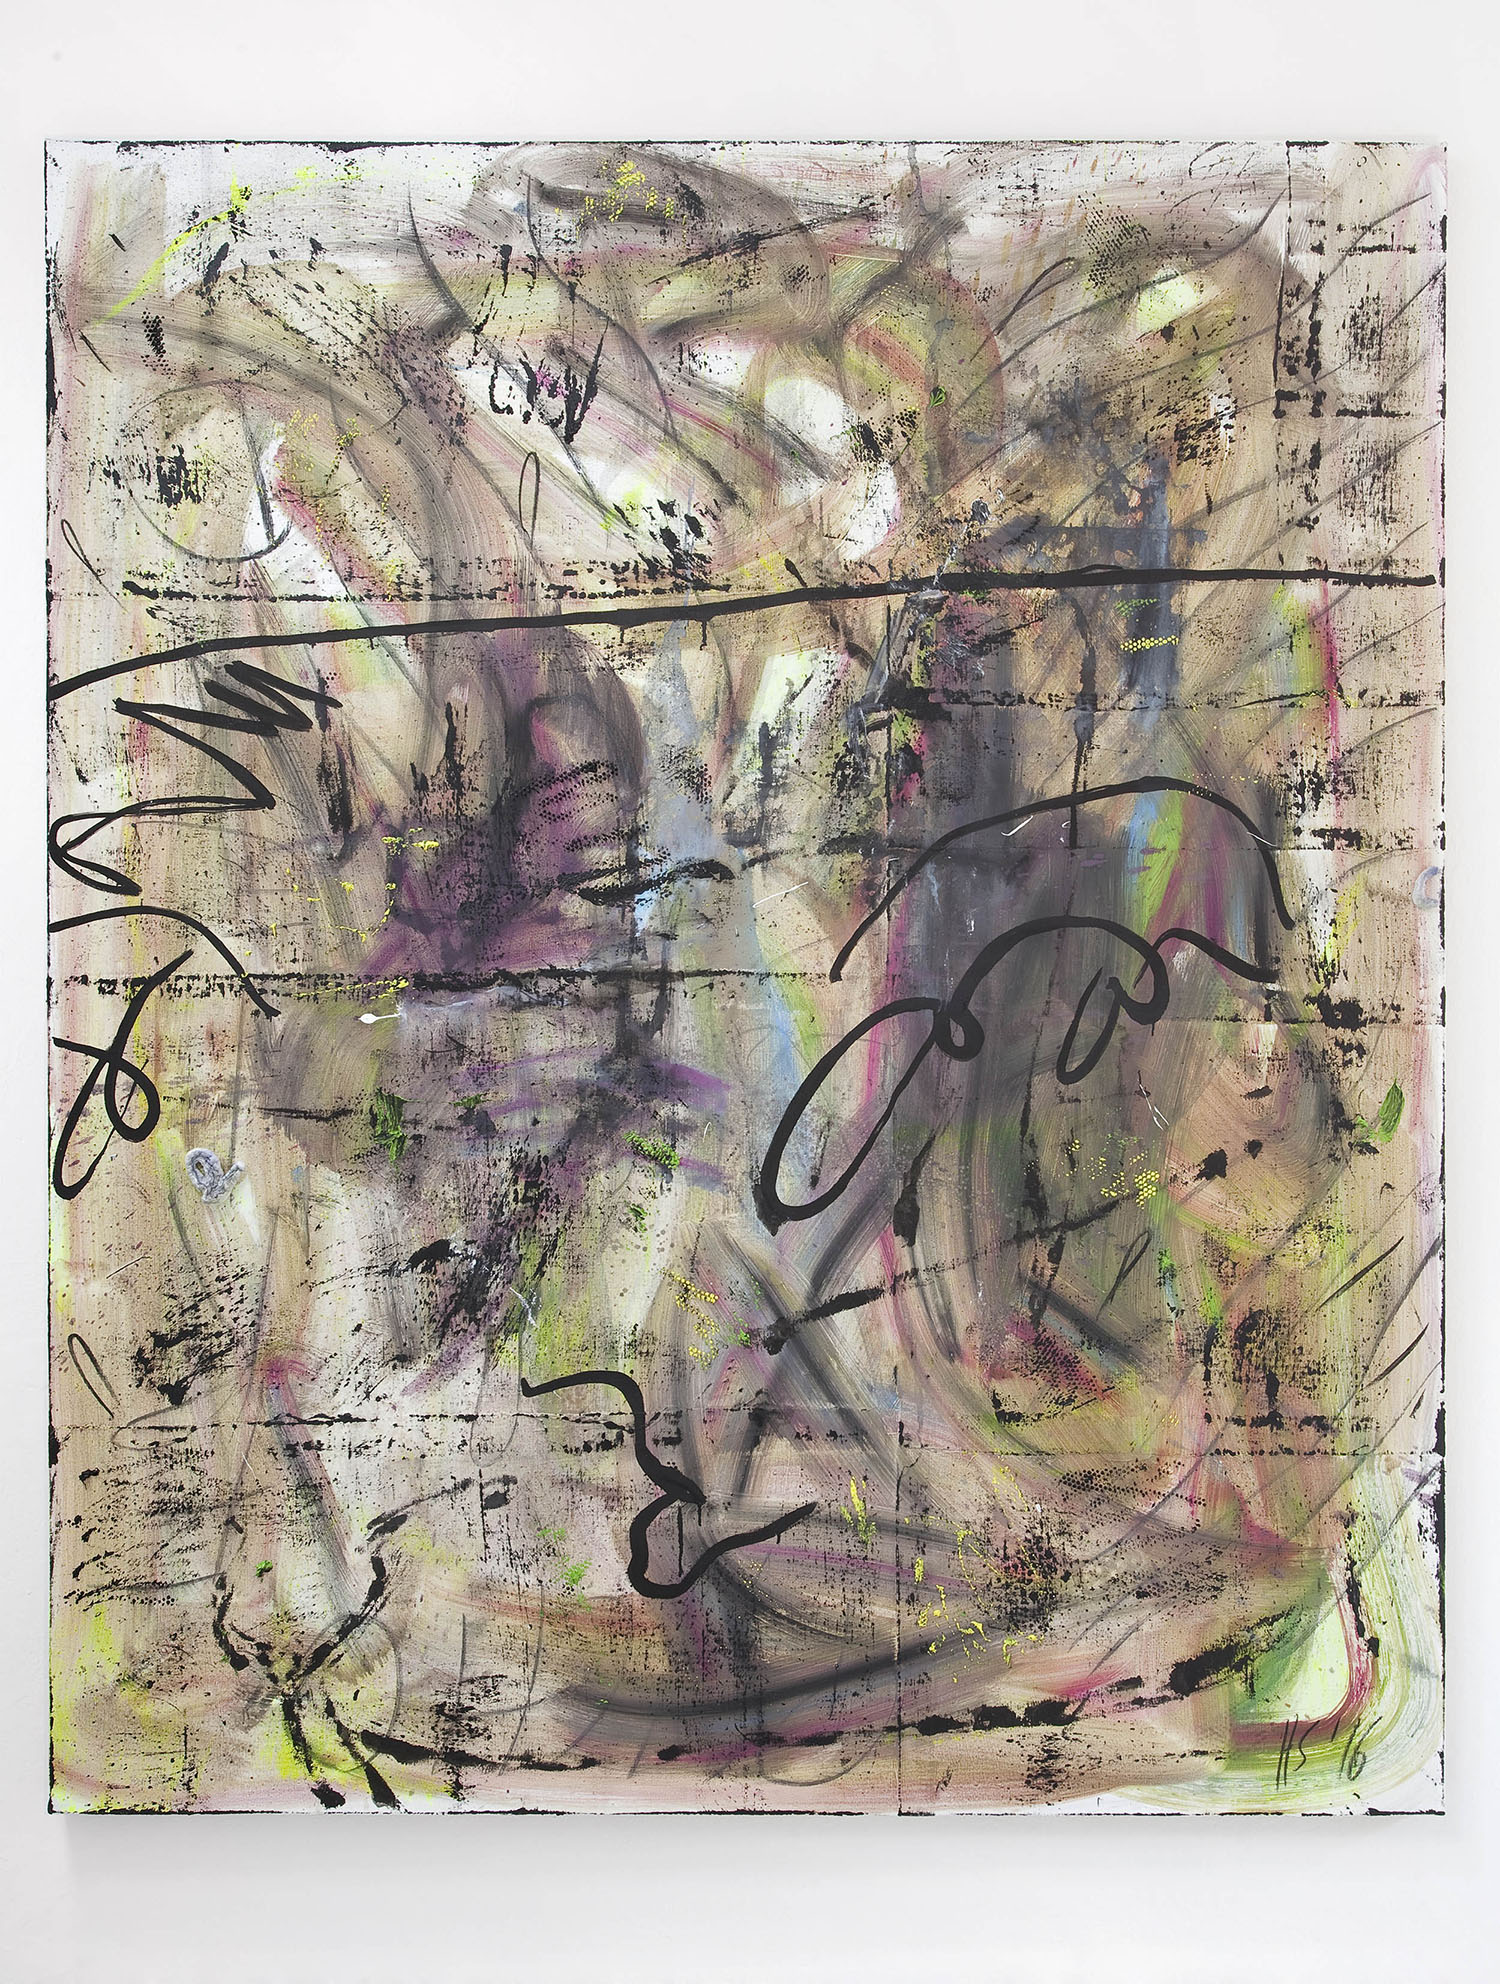 7 - Henning Strassburger Surviver Analyst 2016 oil and foam on canvas 200x140 cm - Courtesy Studiolo Milan copia 2